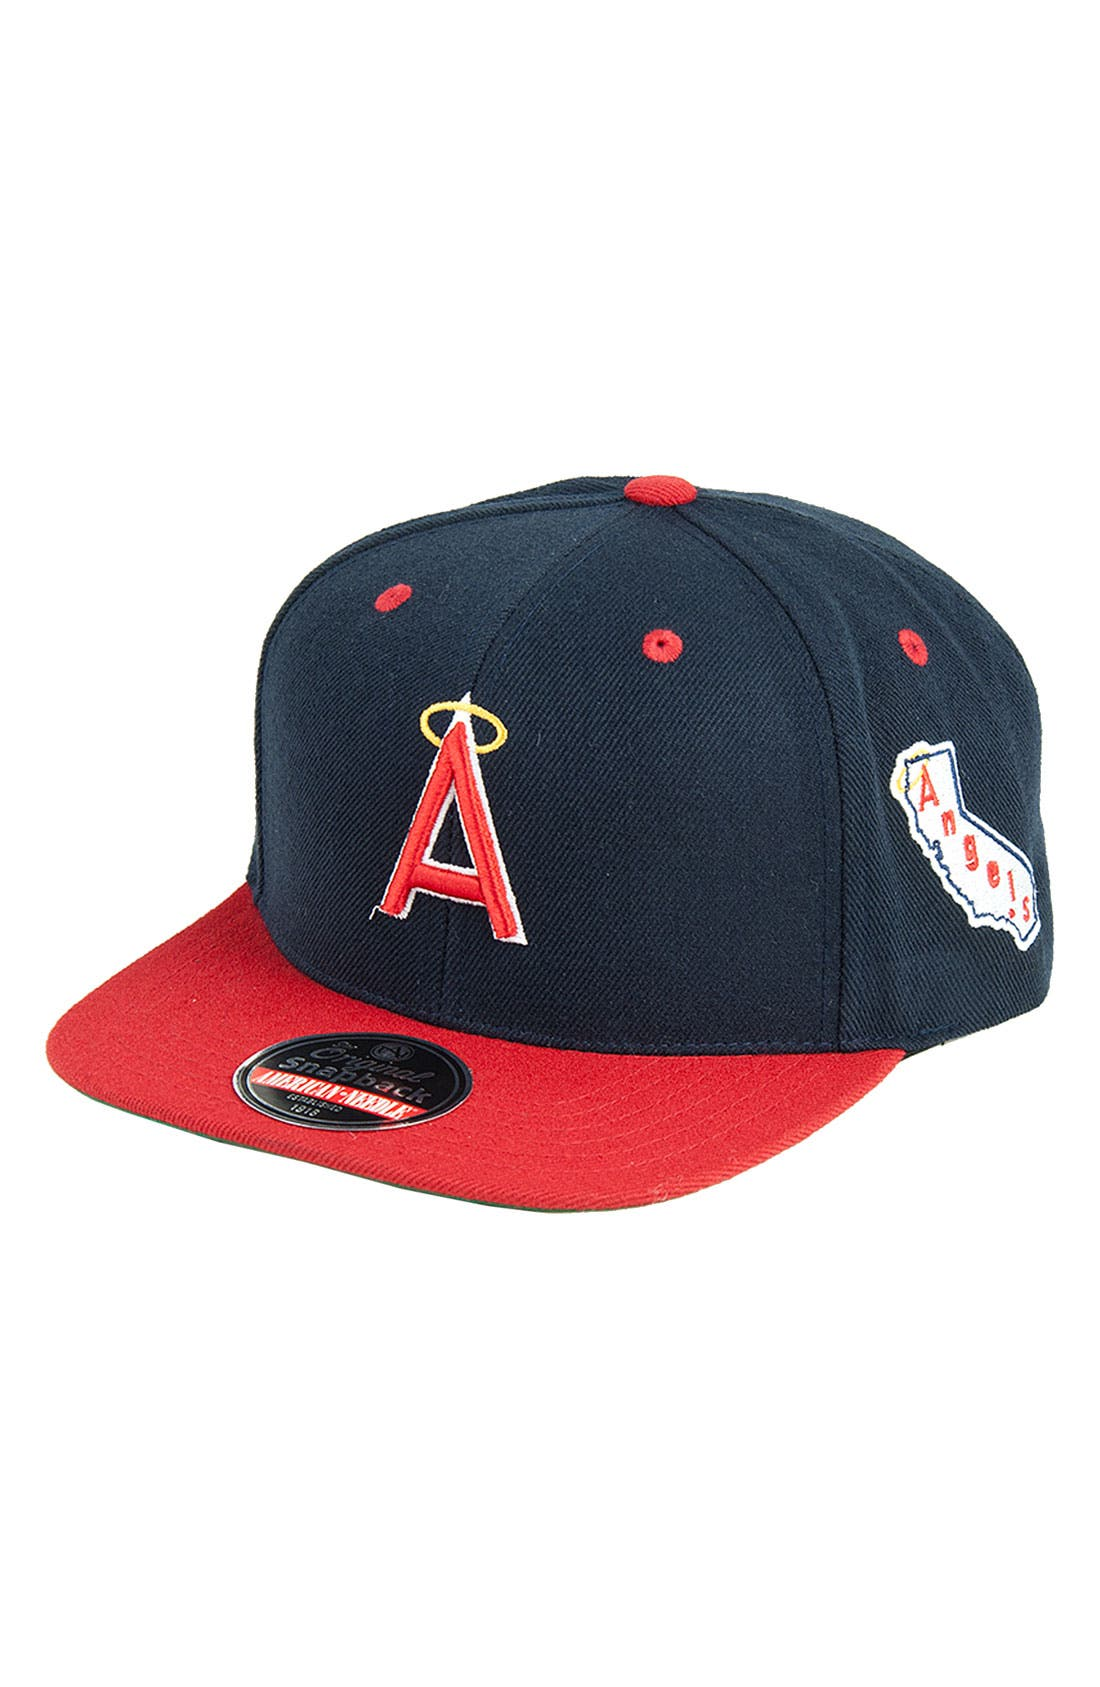 Alternate Image 1 Selected - American Needle 'Blockhead Angels' Snapback Baseball Cap